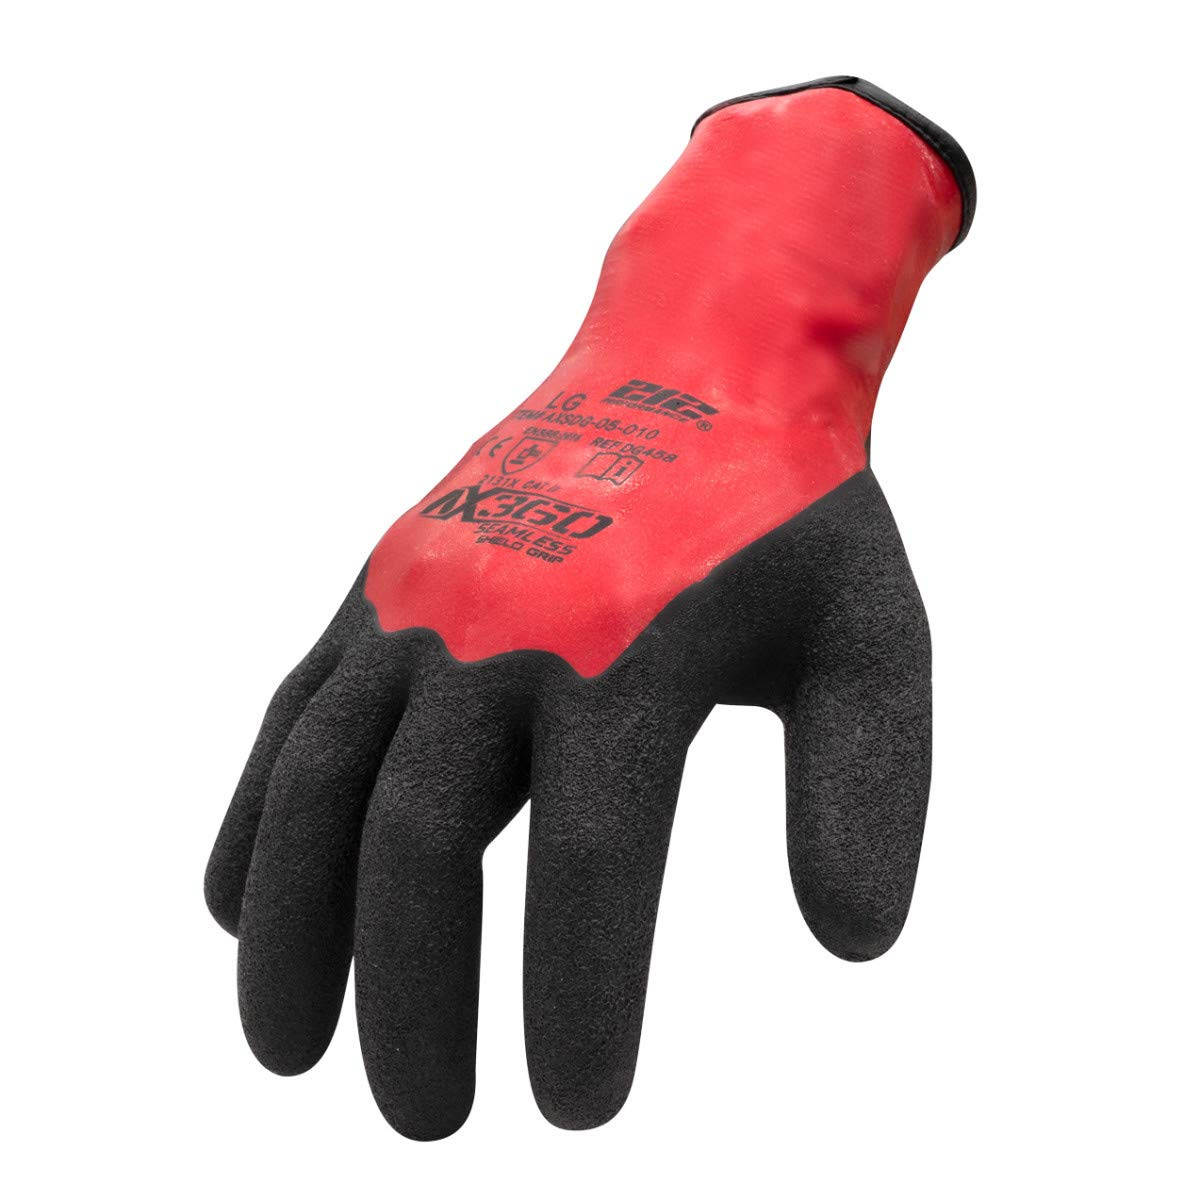 212 Performance Gloves AXSDG-05-011PR AX360 Shield Grip Latex-dipped Gloves, X-Large